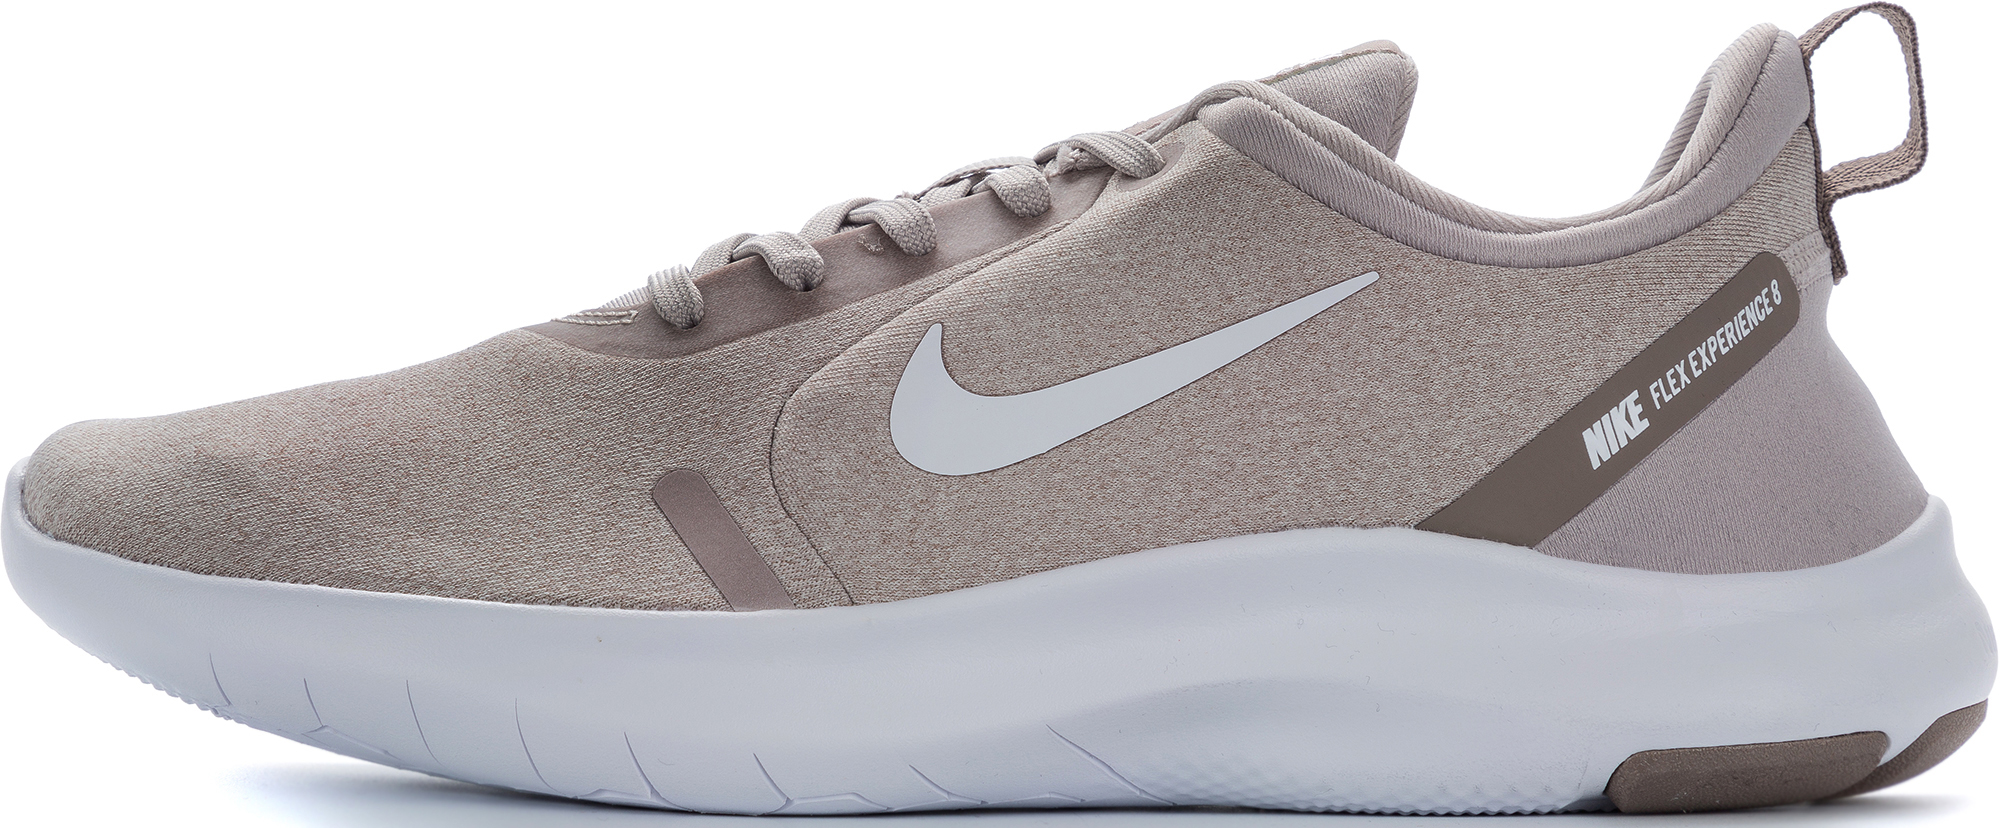 Nike Кроссовки женские Nike Flex Experience Rn 8, размер 35,5 original new arrival 2018 nike flex experience rn 7 men s running shoes sneakers